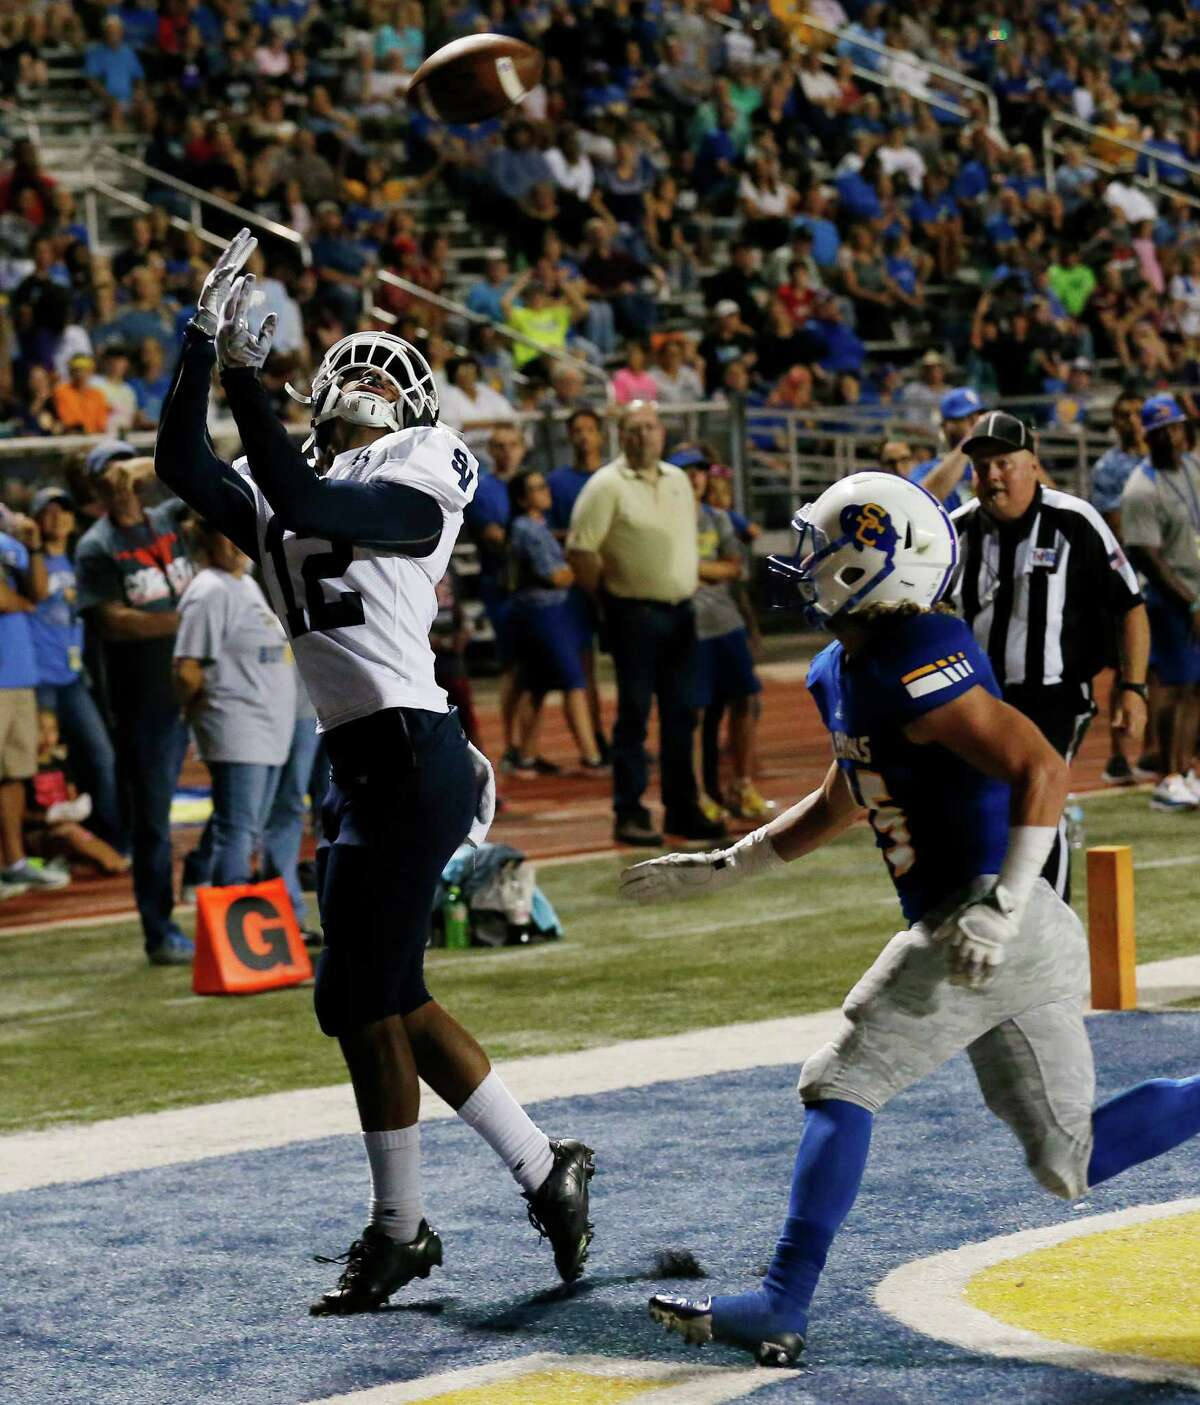 Smithson Valley's Edwin Martinez (12) makes a five-yard pass reception for a touchdown against Clemen's Dalton Polson (25) during their game at Lehnhoff Stadium on Friday, Oct. 14, 2016.